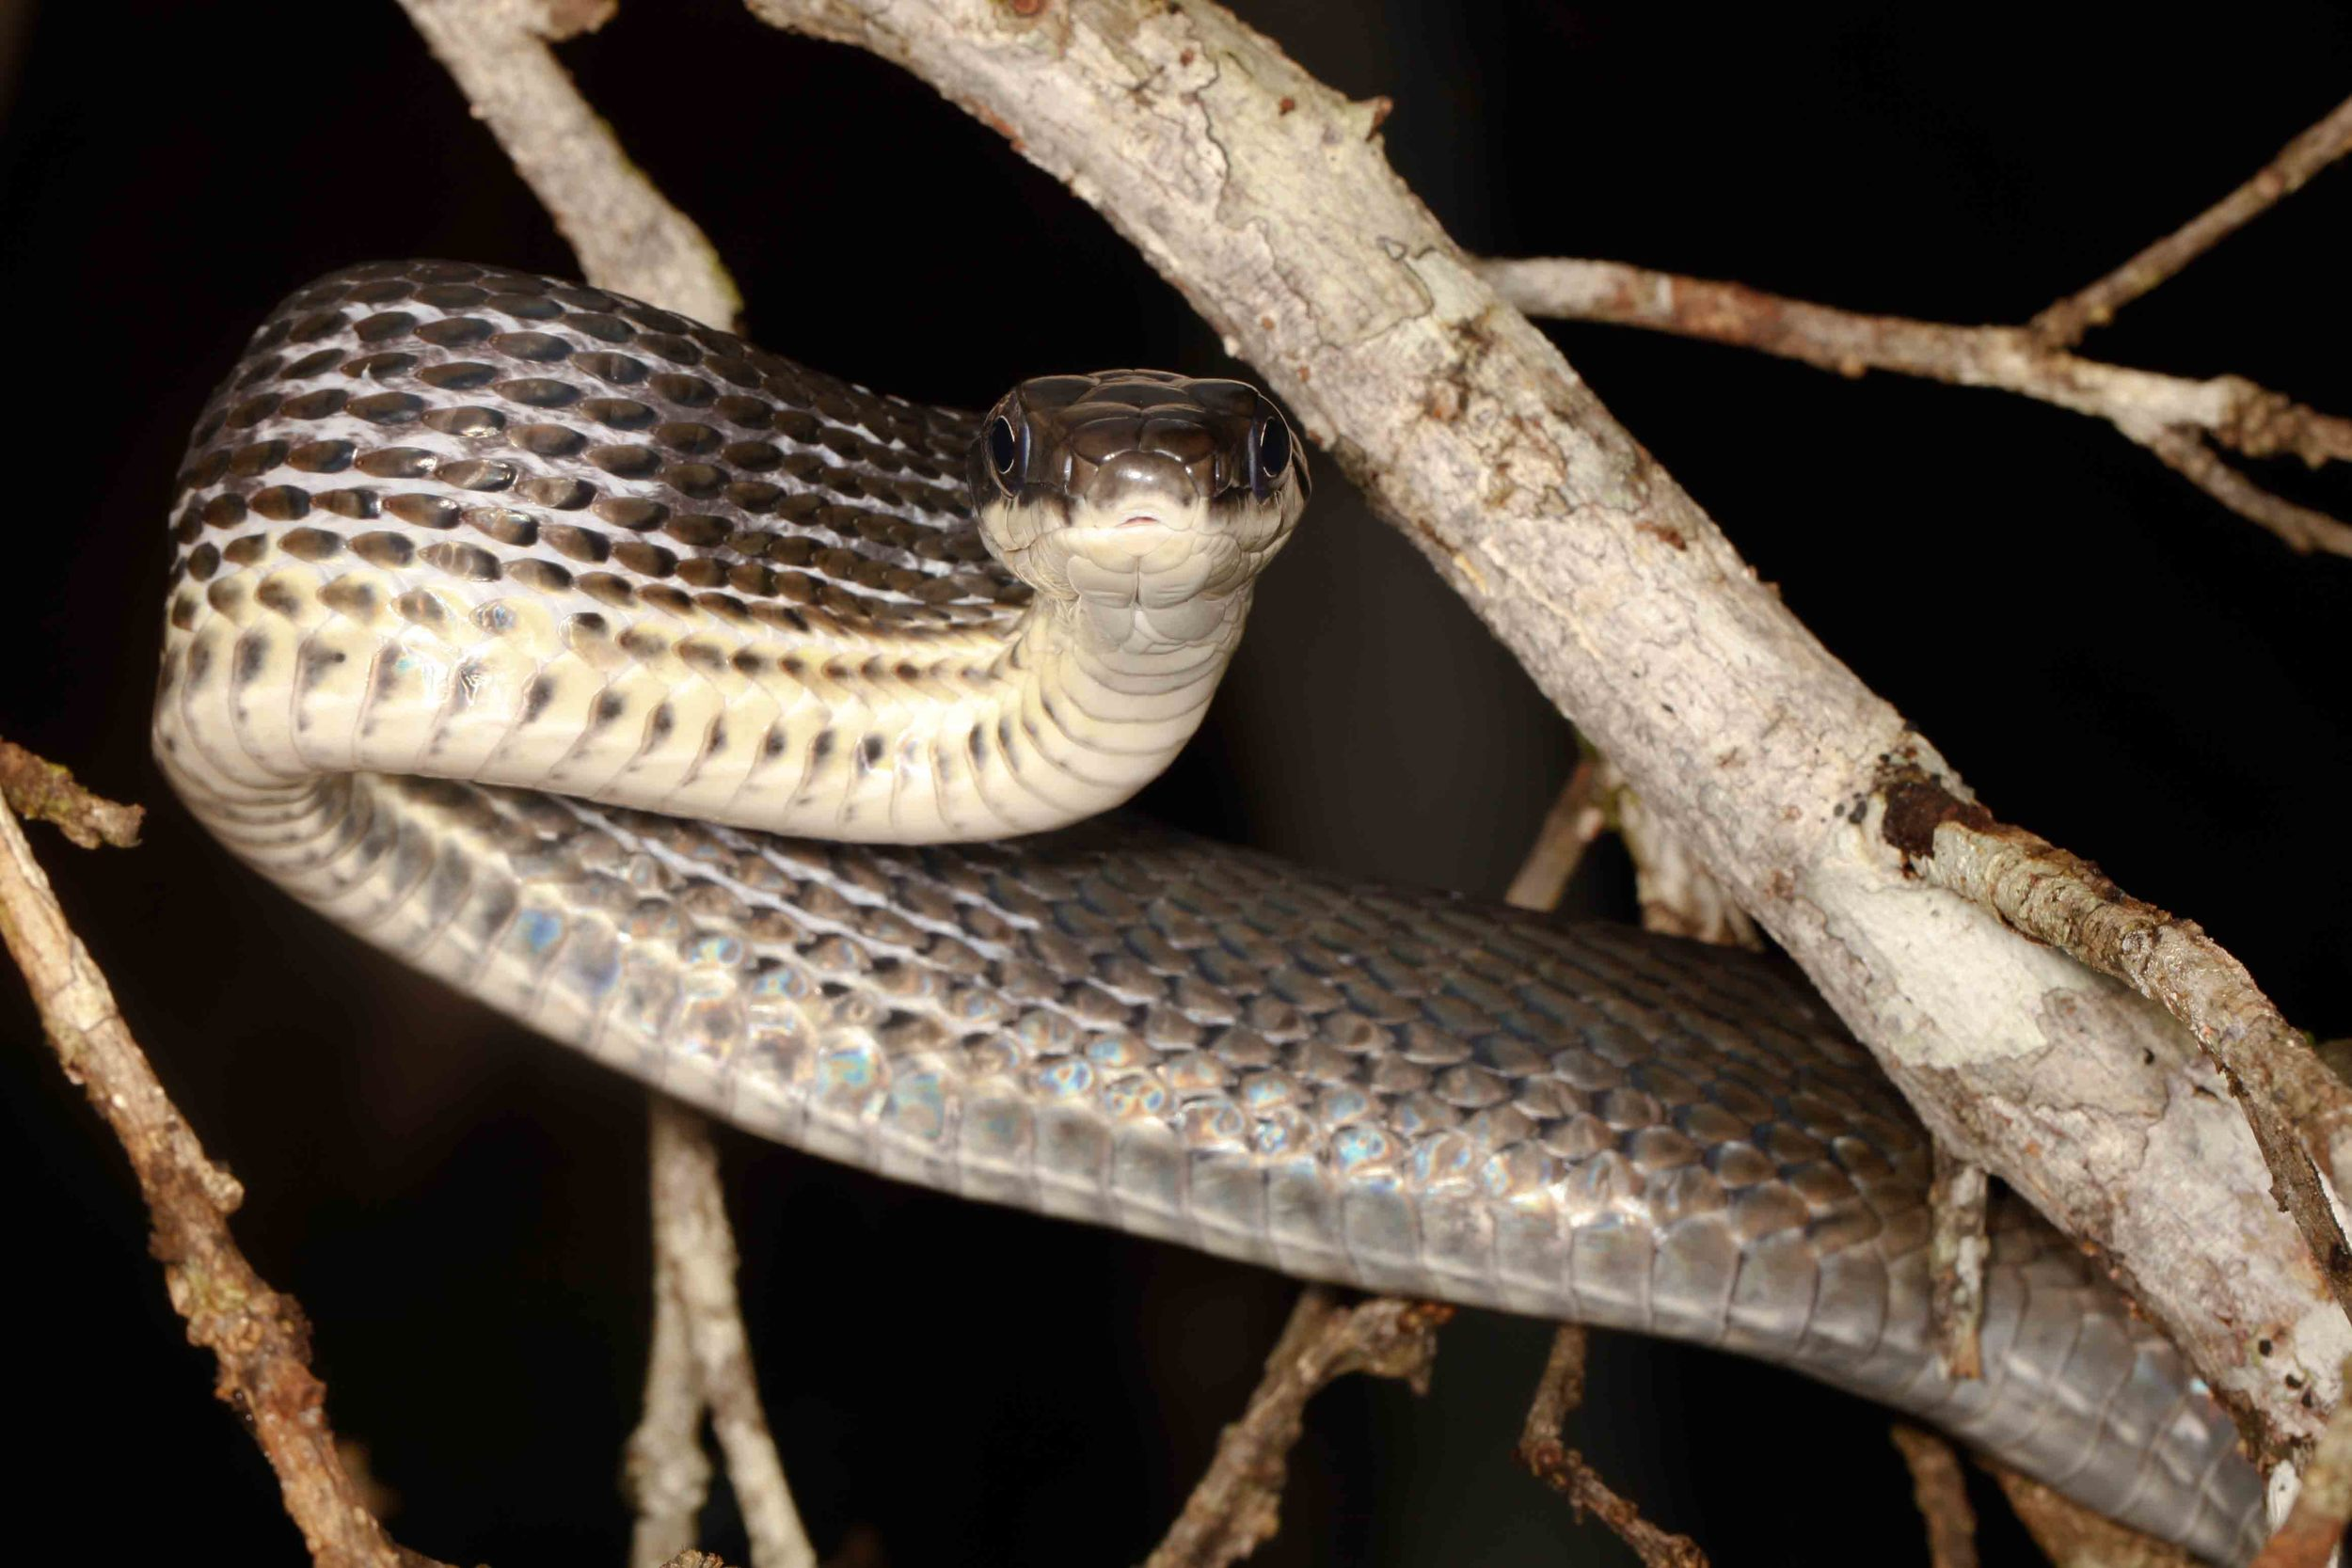 Phrynonax (Pseustes) poecilonotus, Common Bird Snake (Photo by Matt Cage)